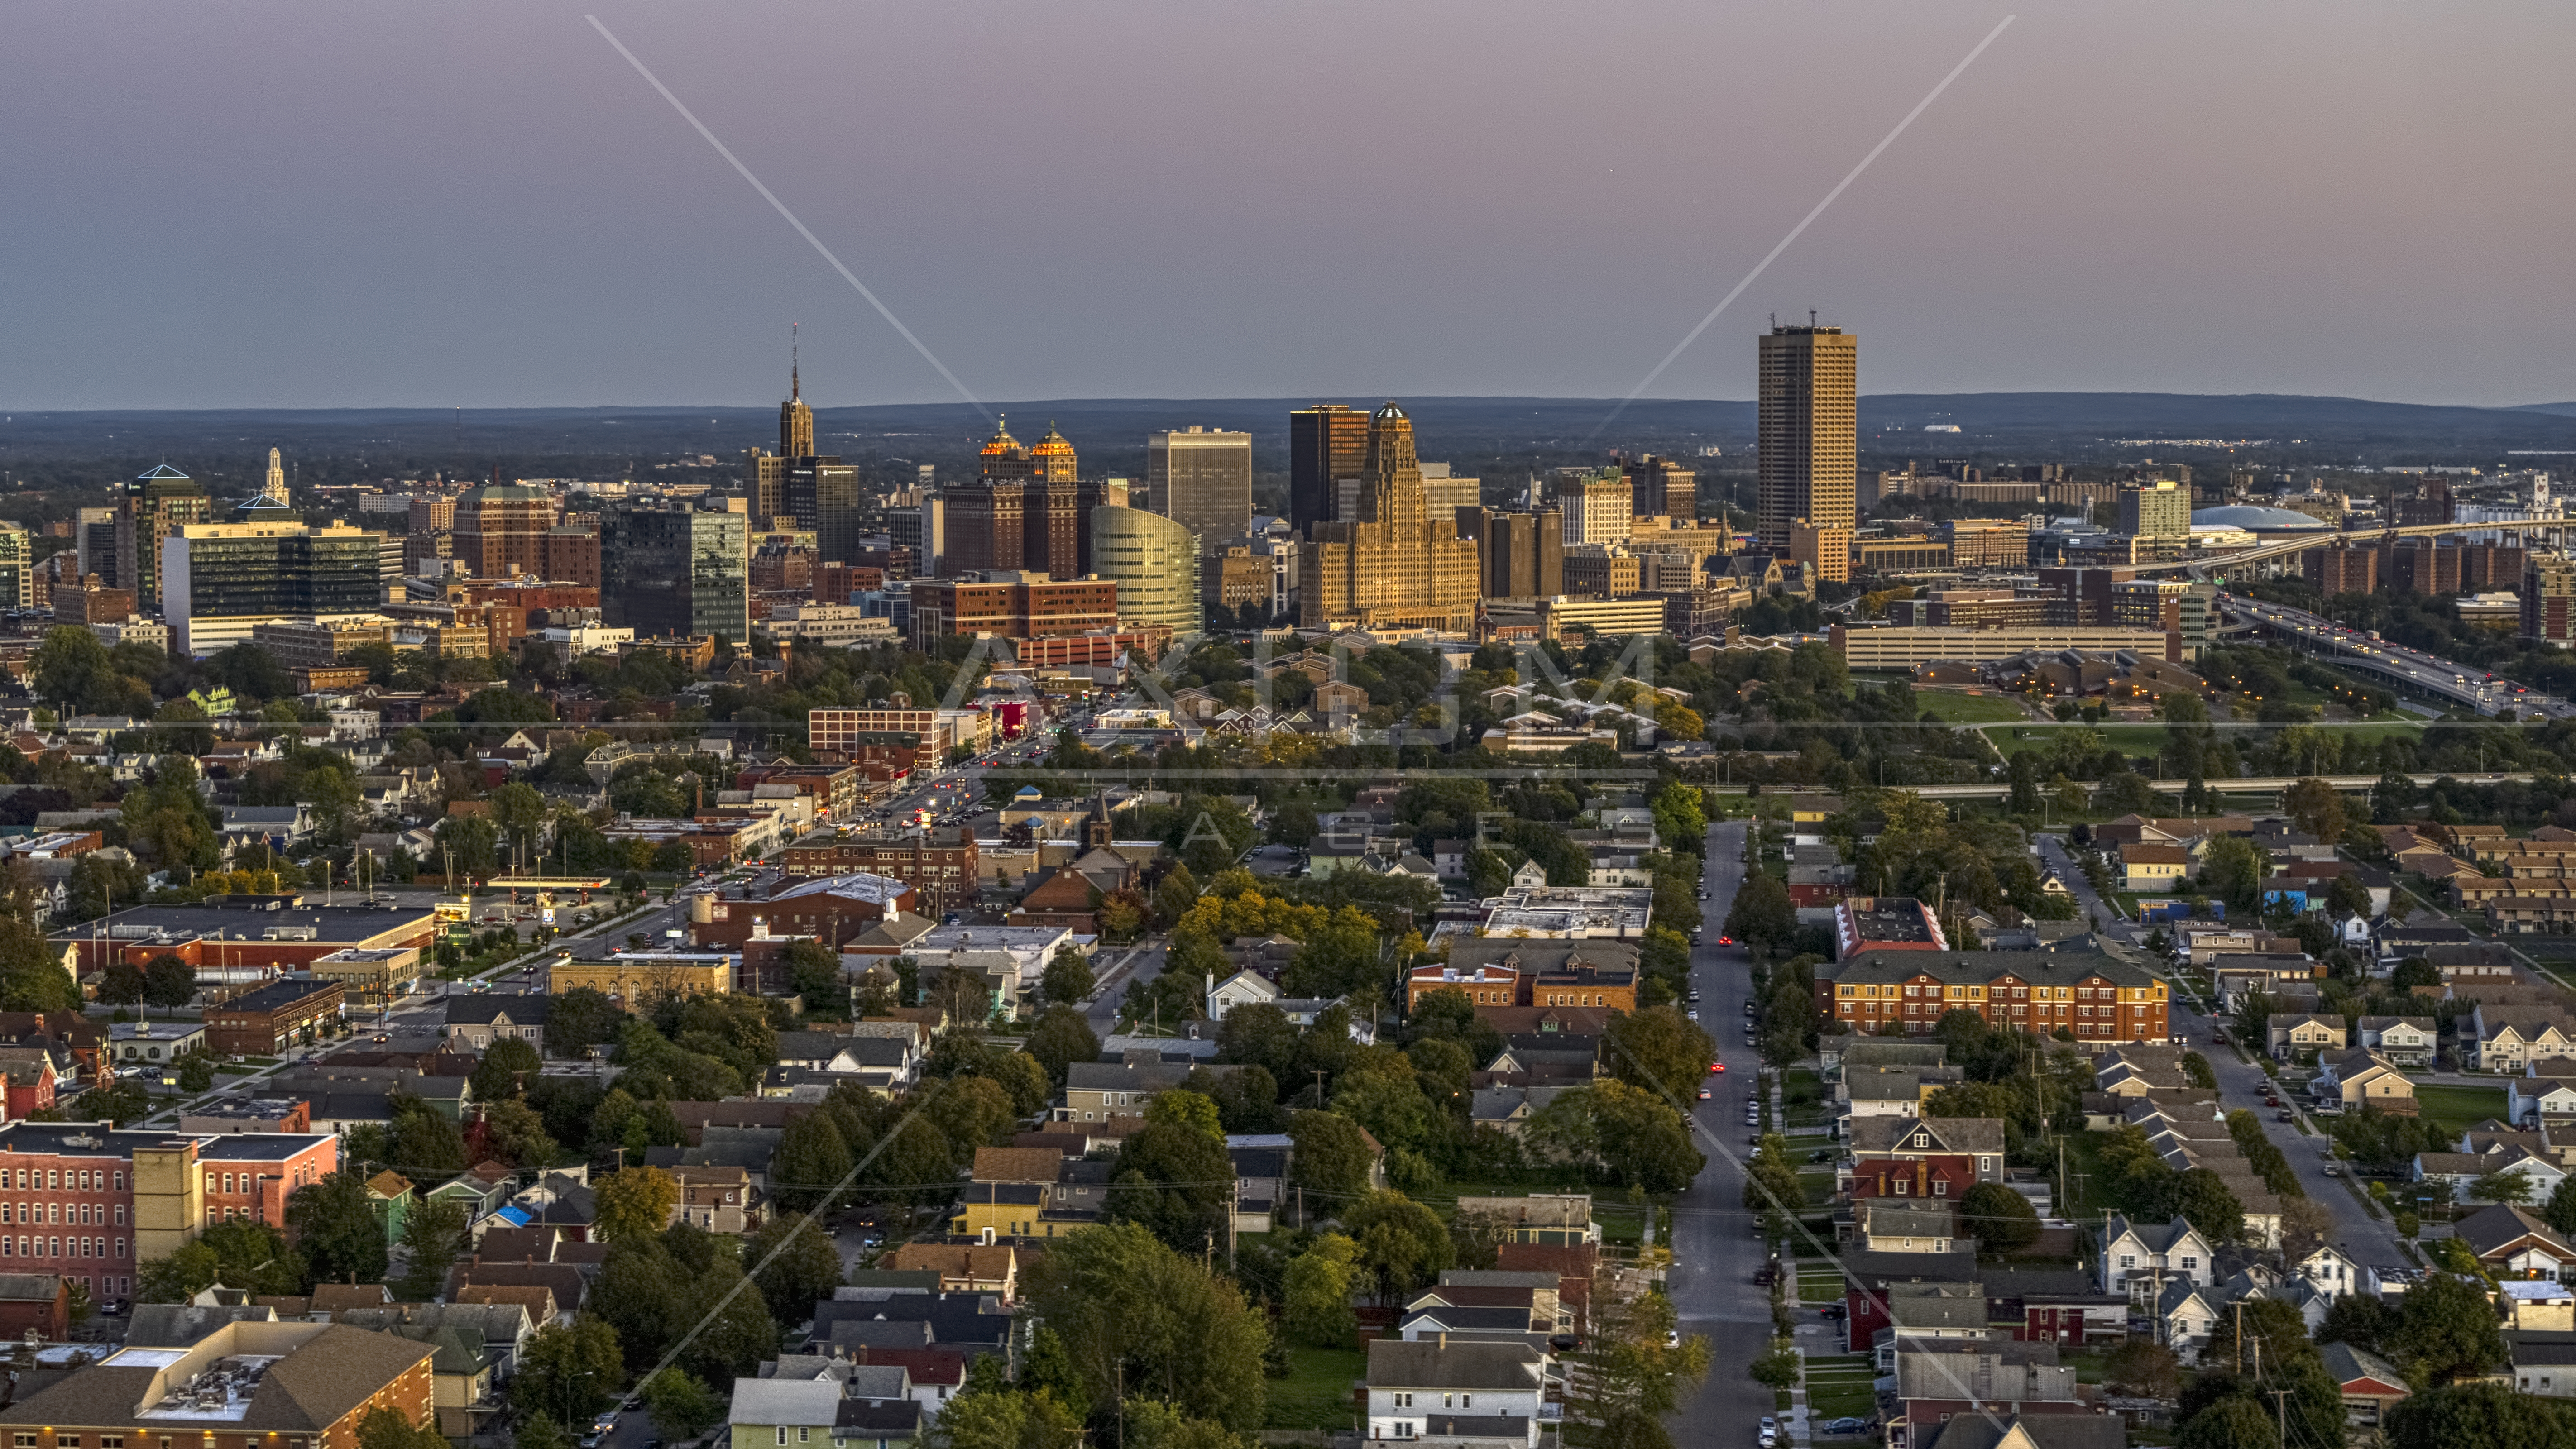 Seneca One Tower And The City S Skyline At Twilight Downtown Buffalo New York Aerial Stock Photo Dxp002 204 0016 Axiom Images